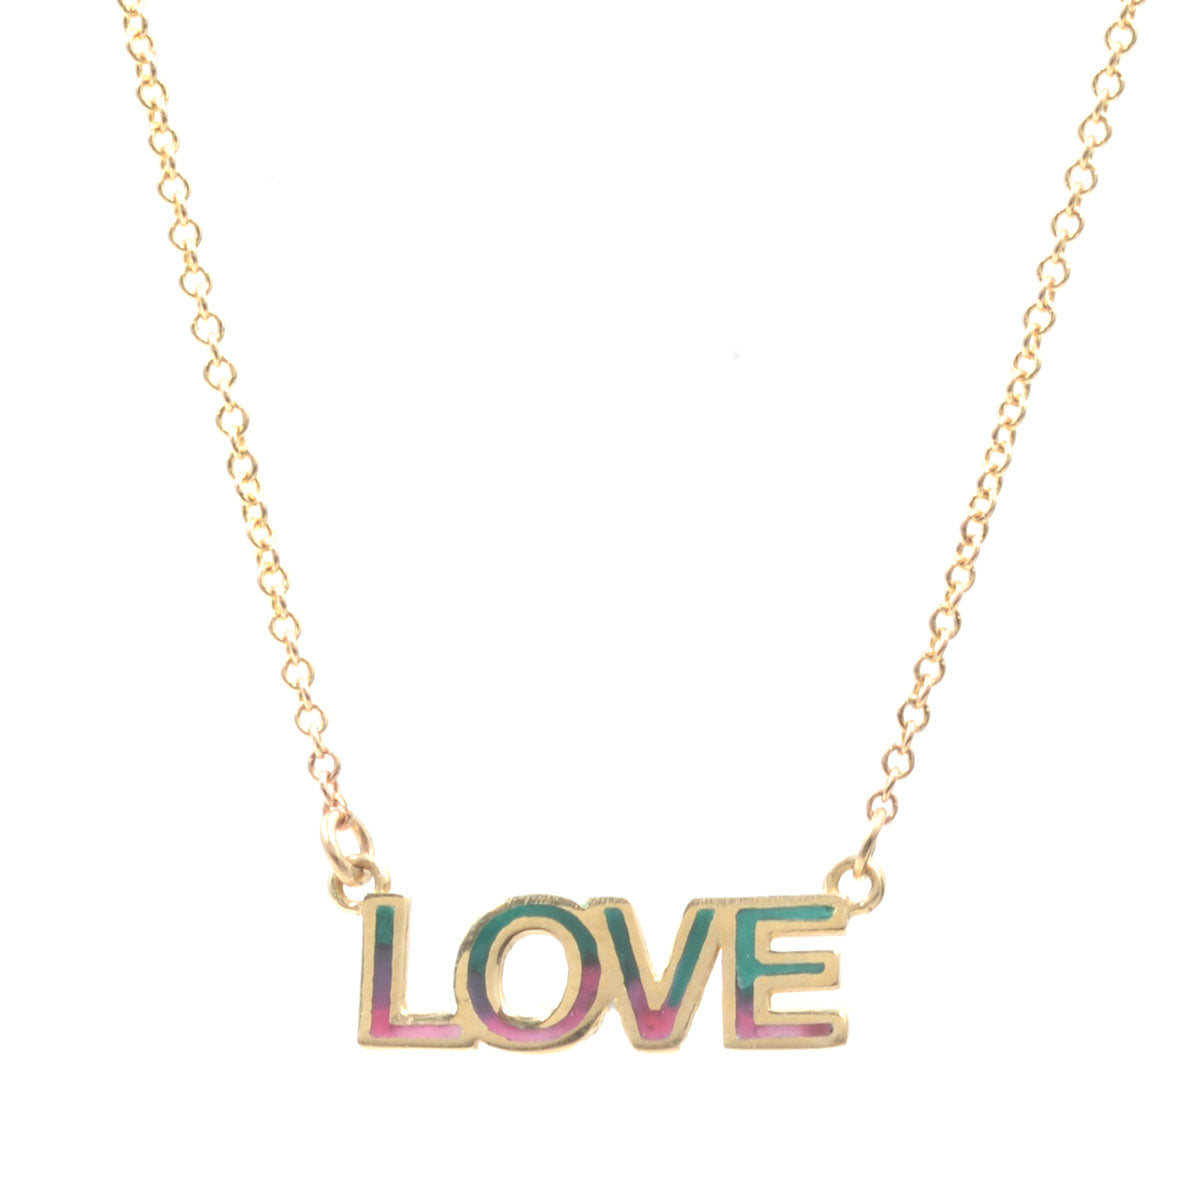 pendants name jewelry own personalized necklace necklaces font custom pendant img your fascinating for customize shop friends carrie best